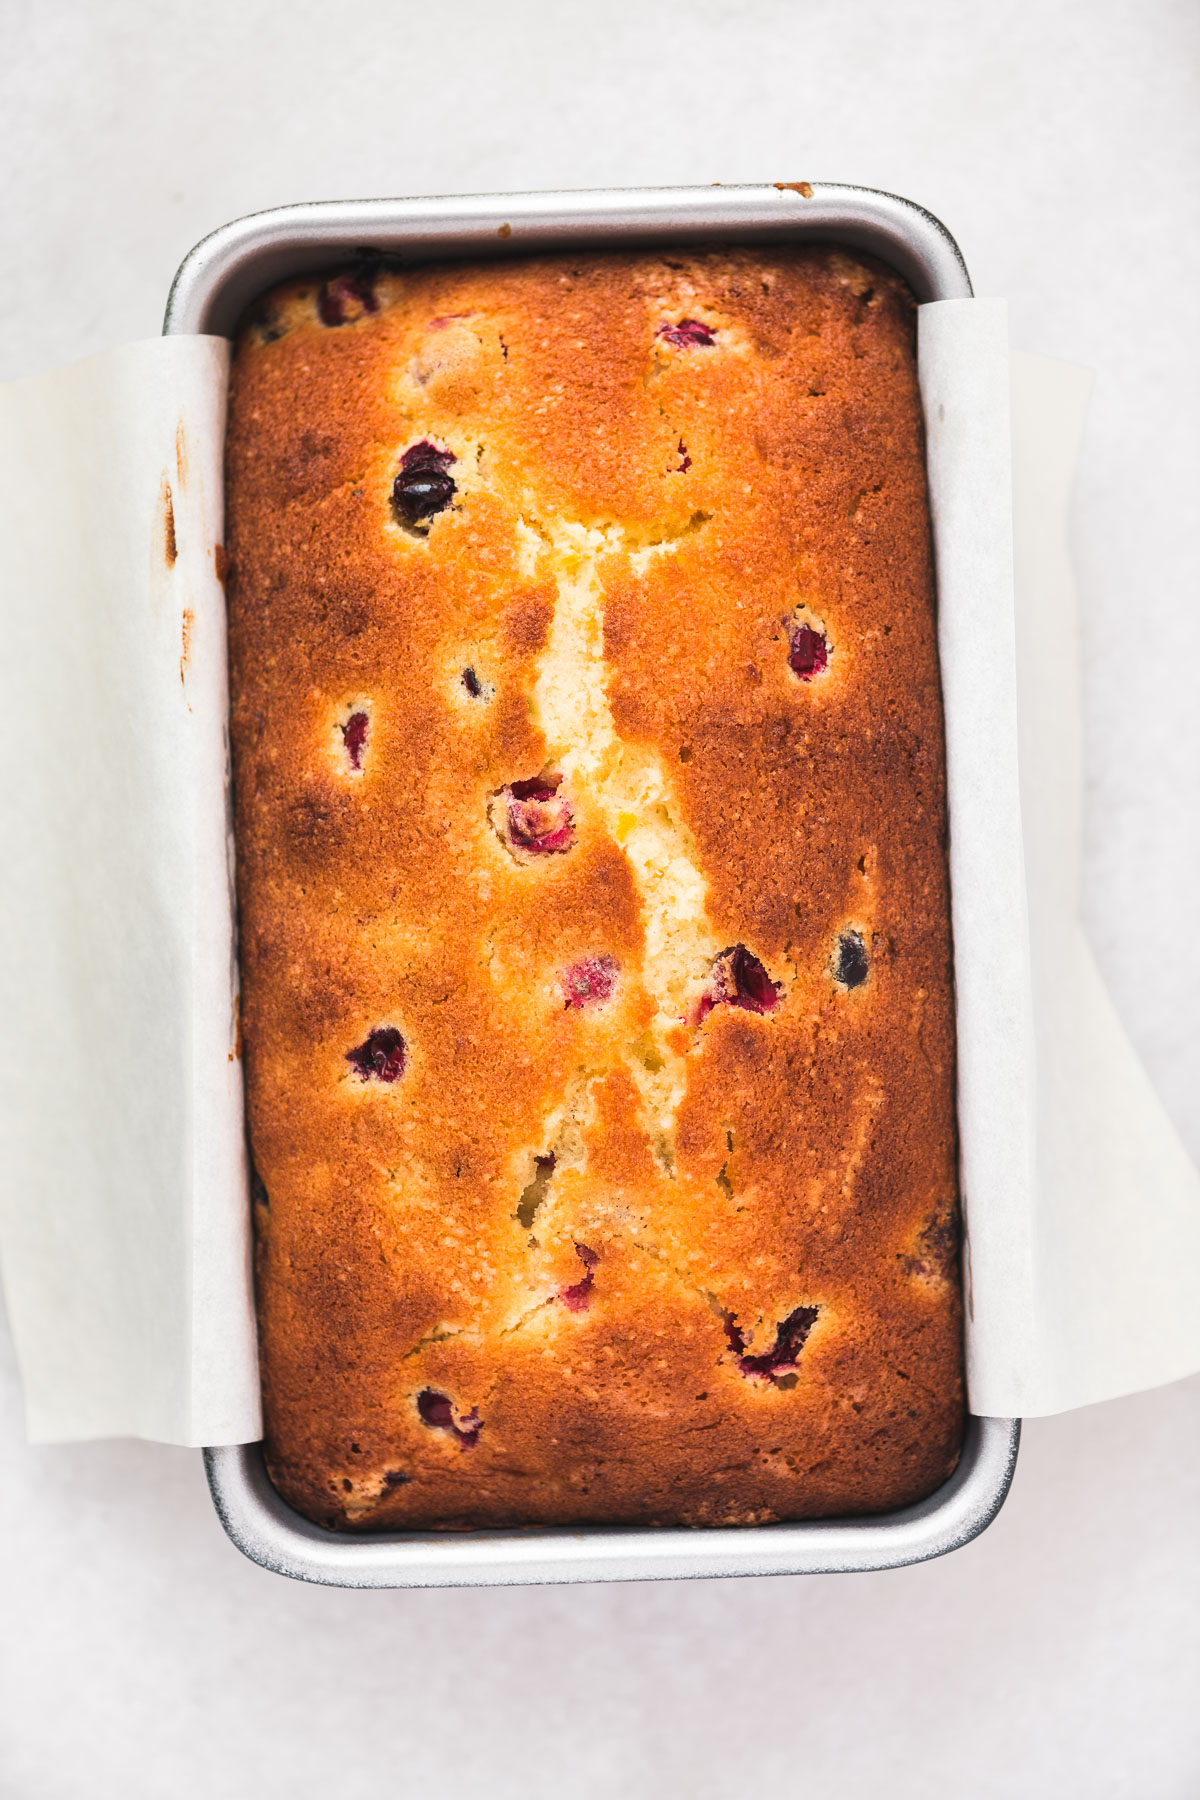 cranberry orange bread just out of the oven